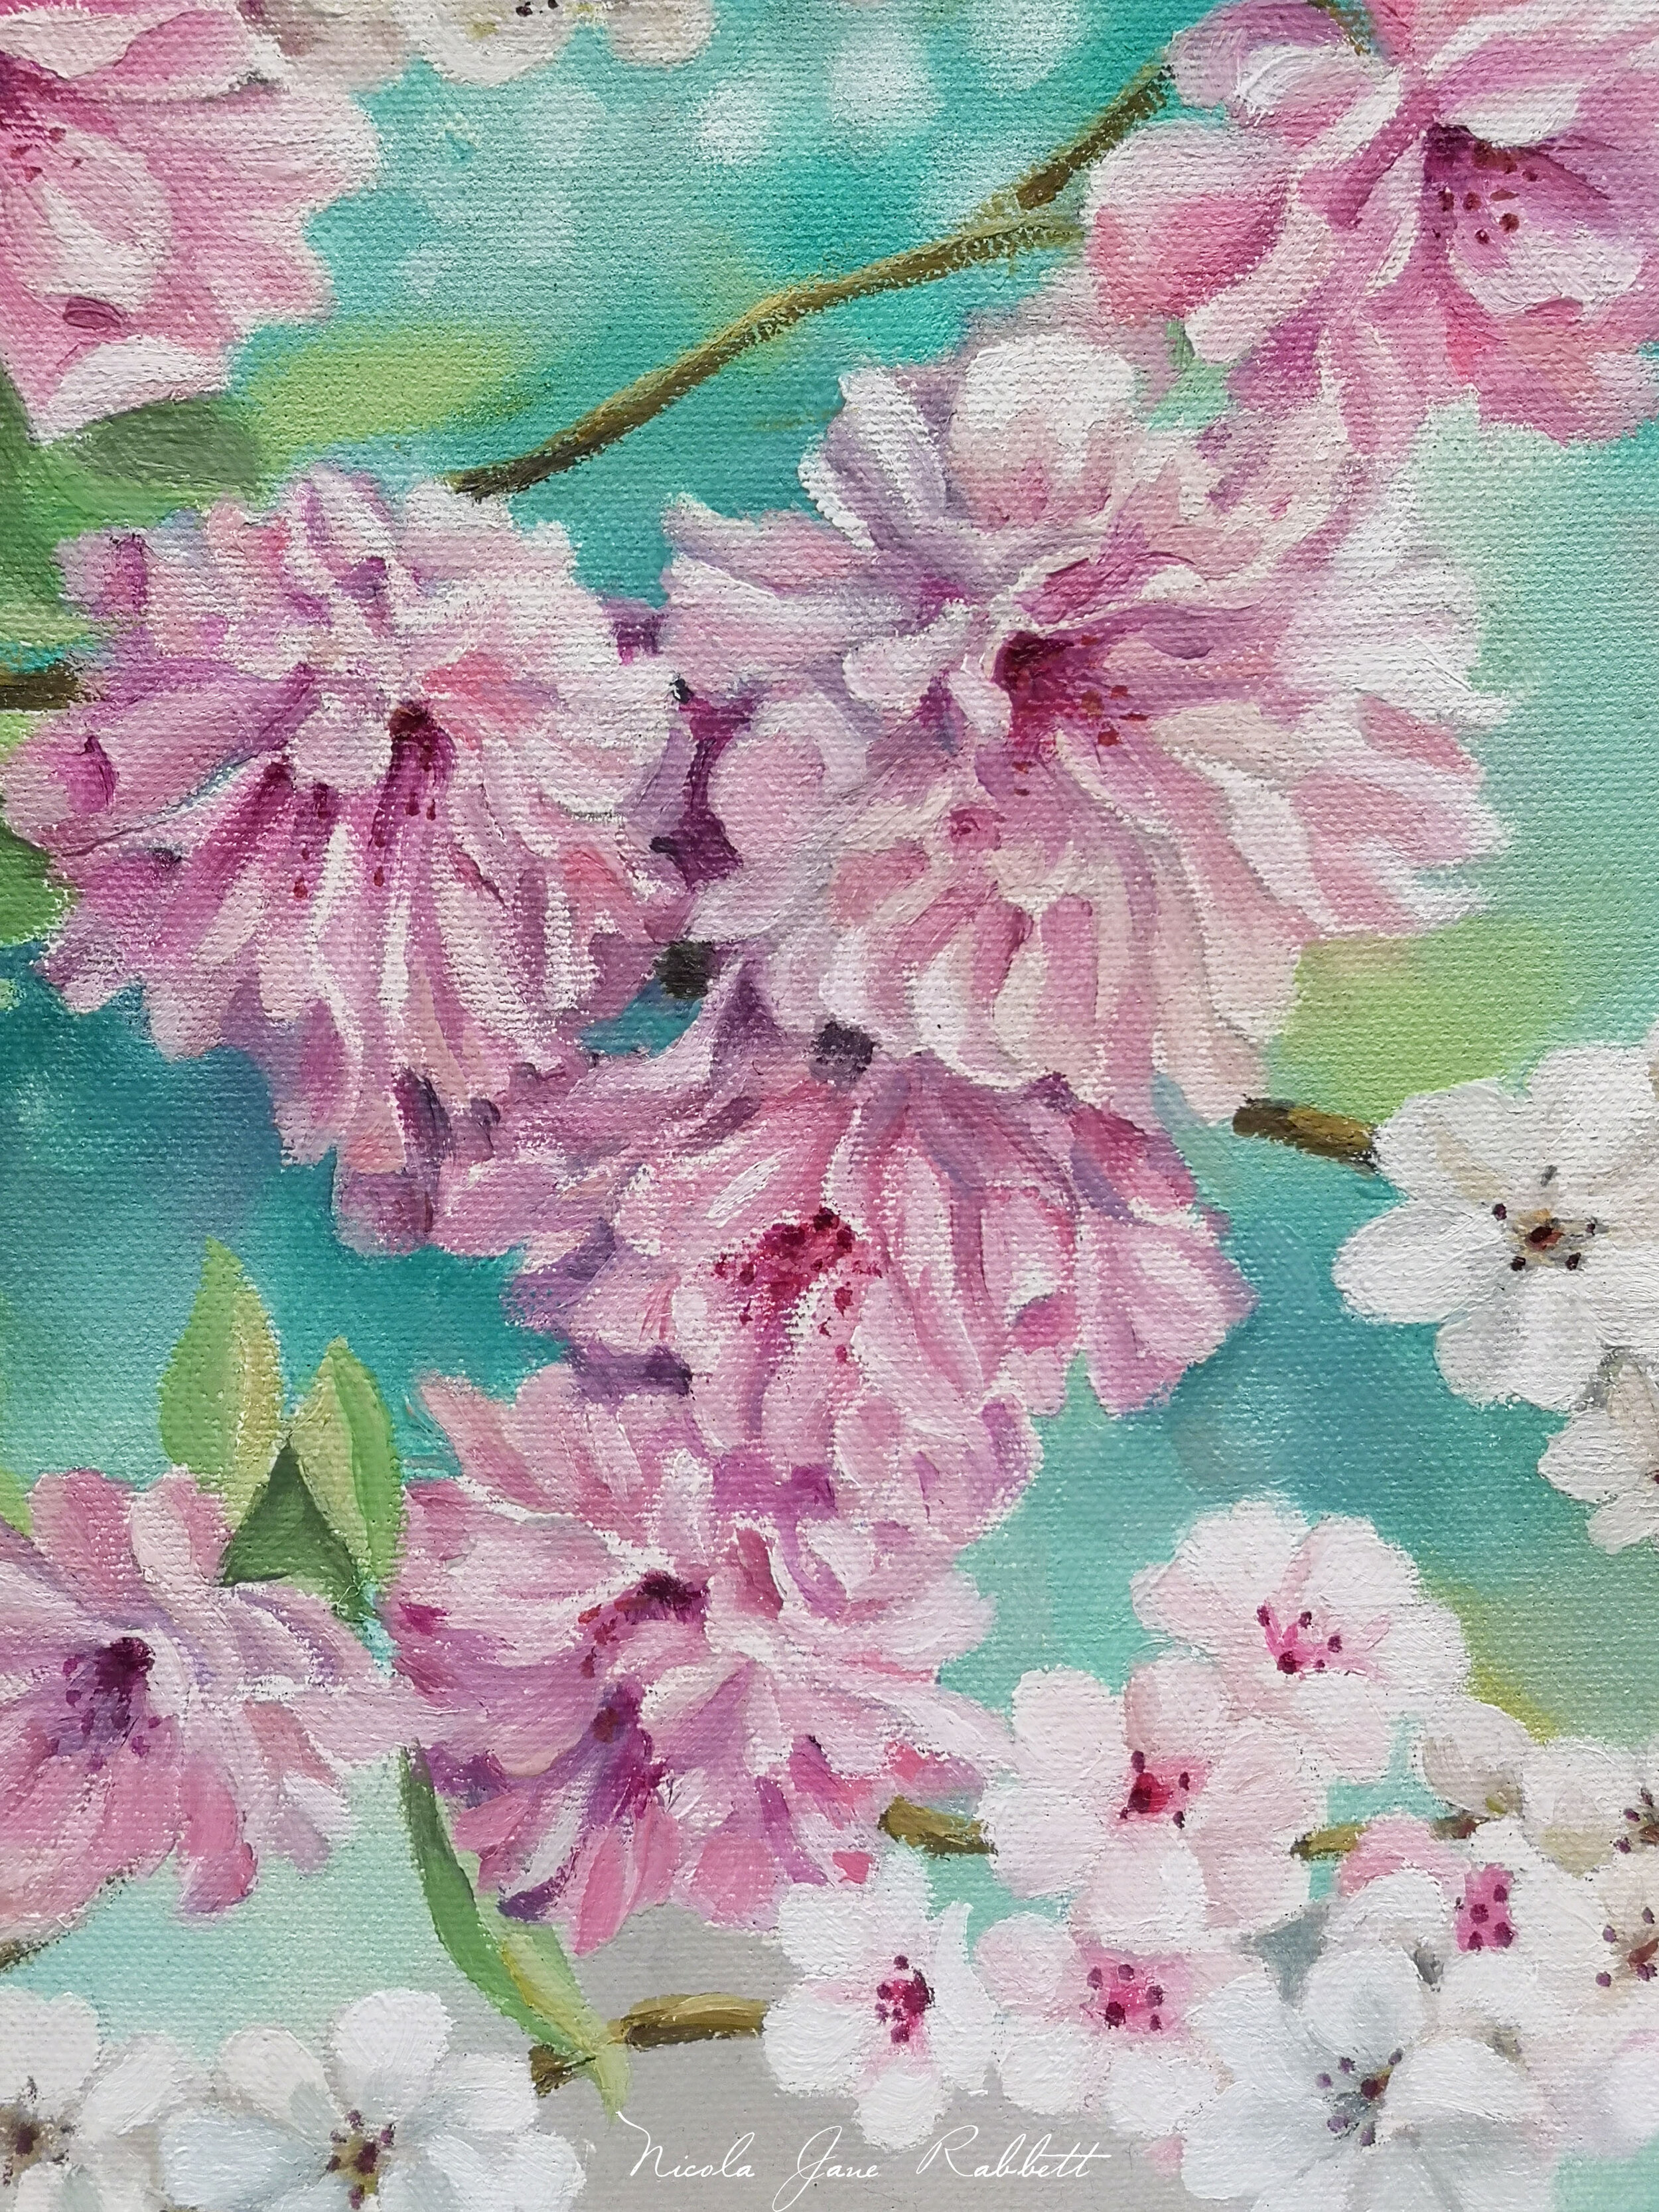 'Prunus Kikushidare -Zakura' - Detail of a weeping cherry blossom tree. - Oil on Canvas.I will be donating this to Chester Arts Fair's nominated official charity this year, ''The Joshua Tree', for a silent bidding auction, during the run up and throughout the dates of the fair. ' The Joshua Tree' has been fund raising for 12 years to build a new center to support children affected by cancer. Finally this year they have broken ground and the project has begun. To represent their efforts and success there will be a collection of 12 miniature masterpieces with a minimum bid of £45 which would cover the cost of one art therapy session for a child who has been affected by cancer. These pieces will be live on the Chester Arts Fair website - www.chesterartsfair.co.uk for the public to bid for in the run up to the fair, as well as on display at the fair for further bidding.. 'Prunus KiKushidare - Zakura will be available to bid on along with 11 other 'Mini Masterpieces' from the talented artists exhibiting at the Fair.